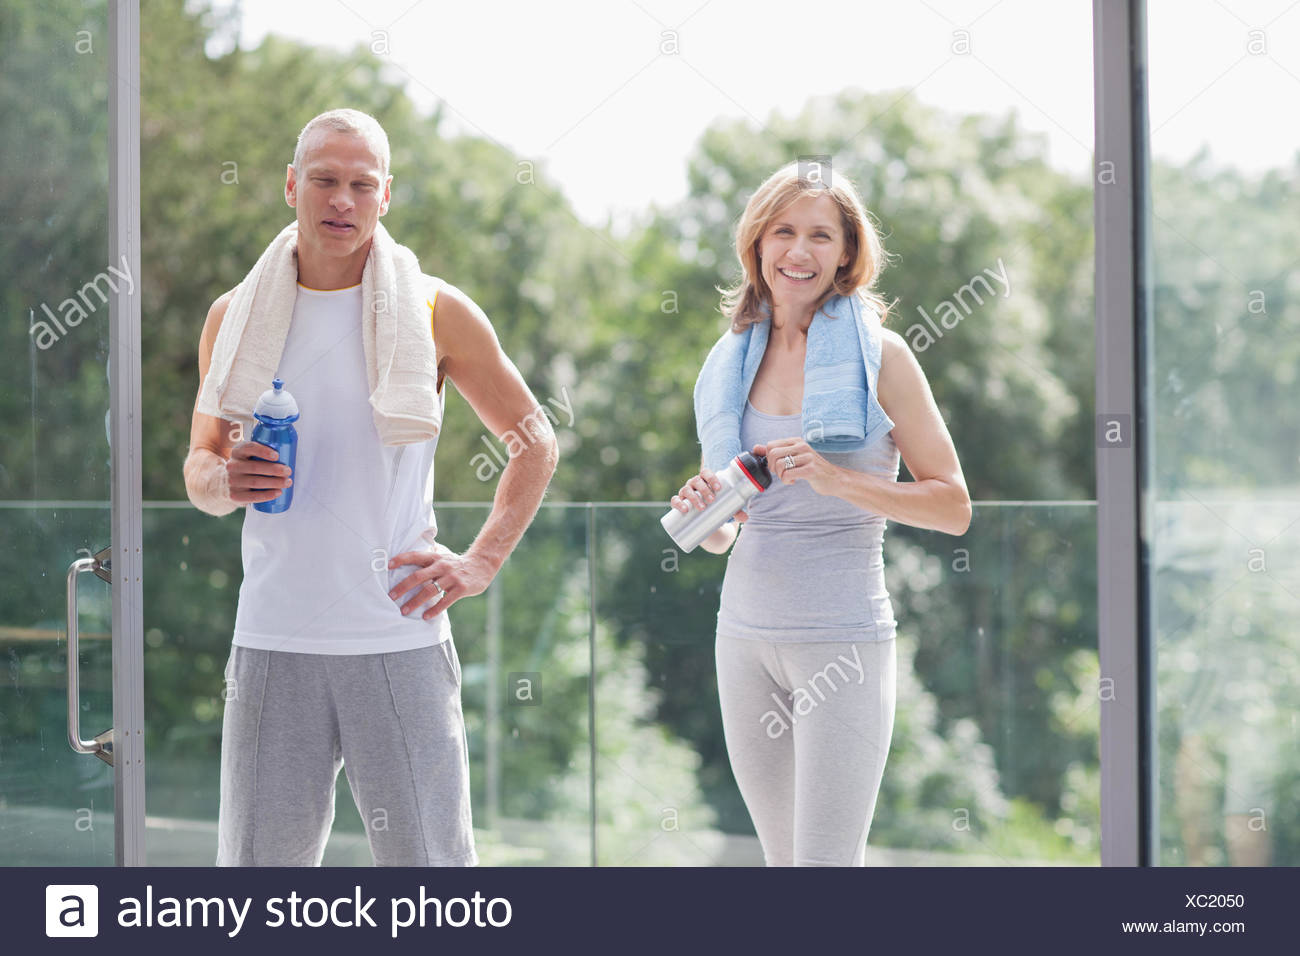 Couple standing with towels and water bottles - Stock Image